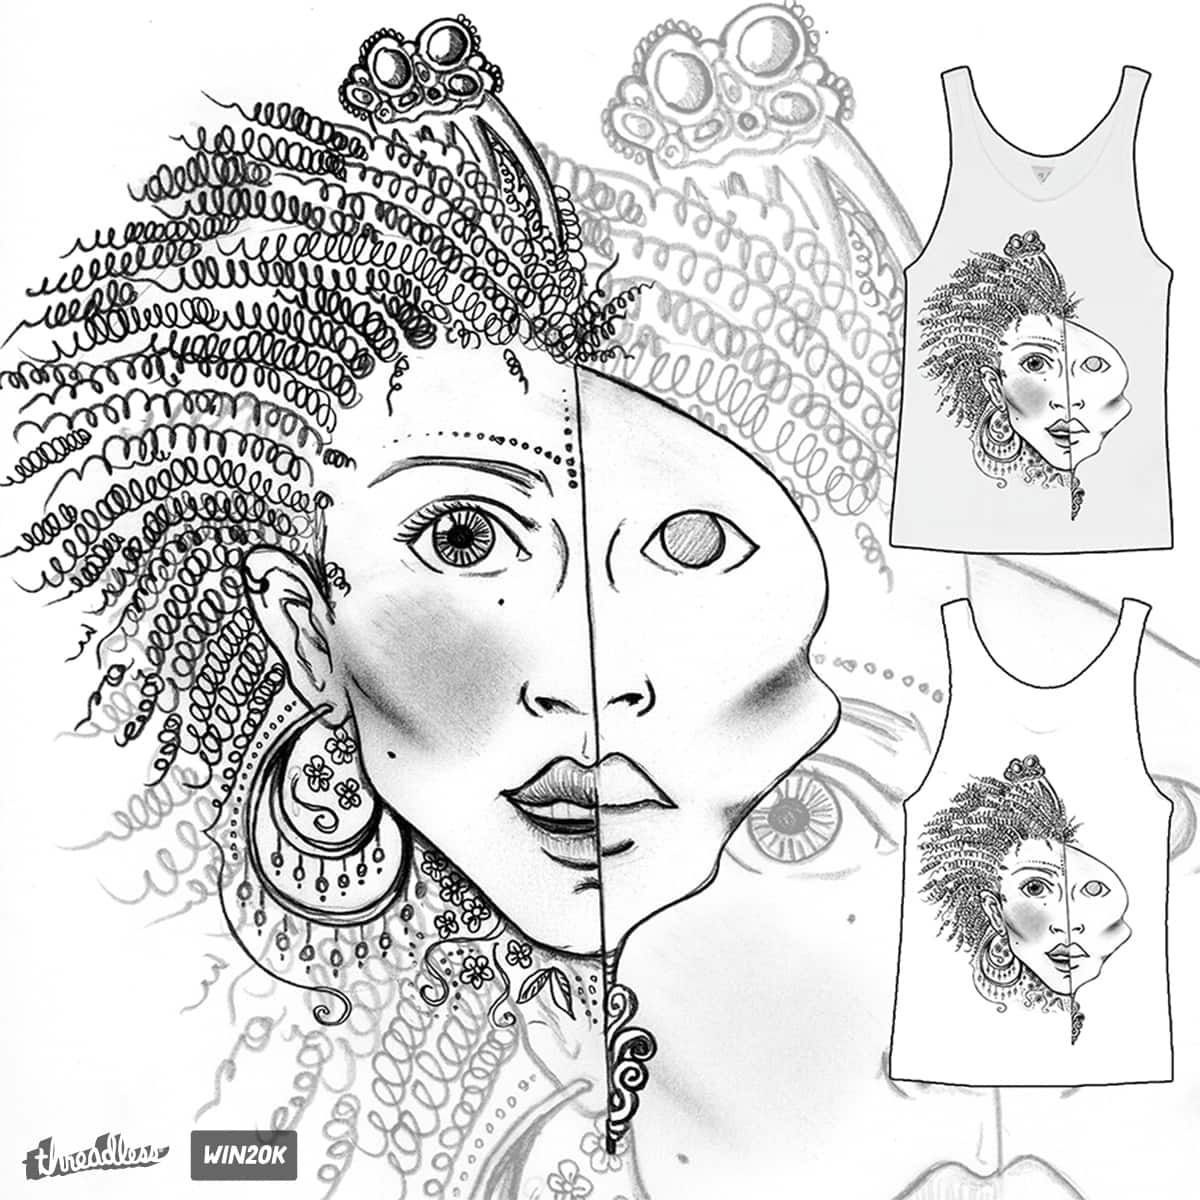 Expression by Adelai on Threadless